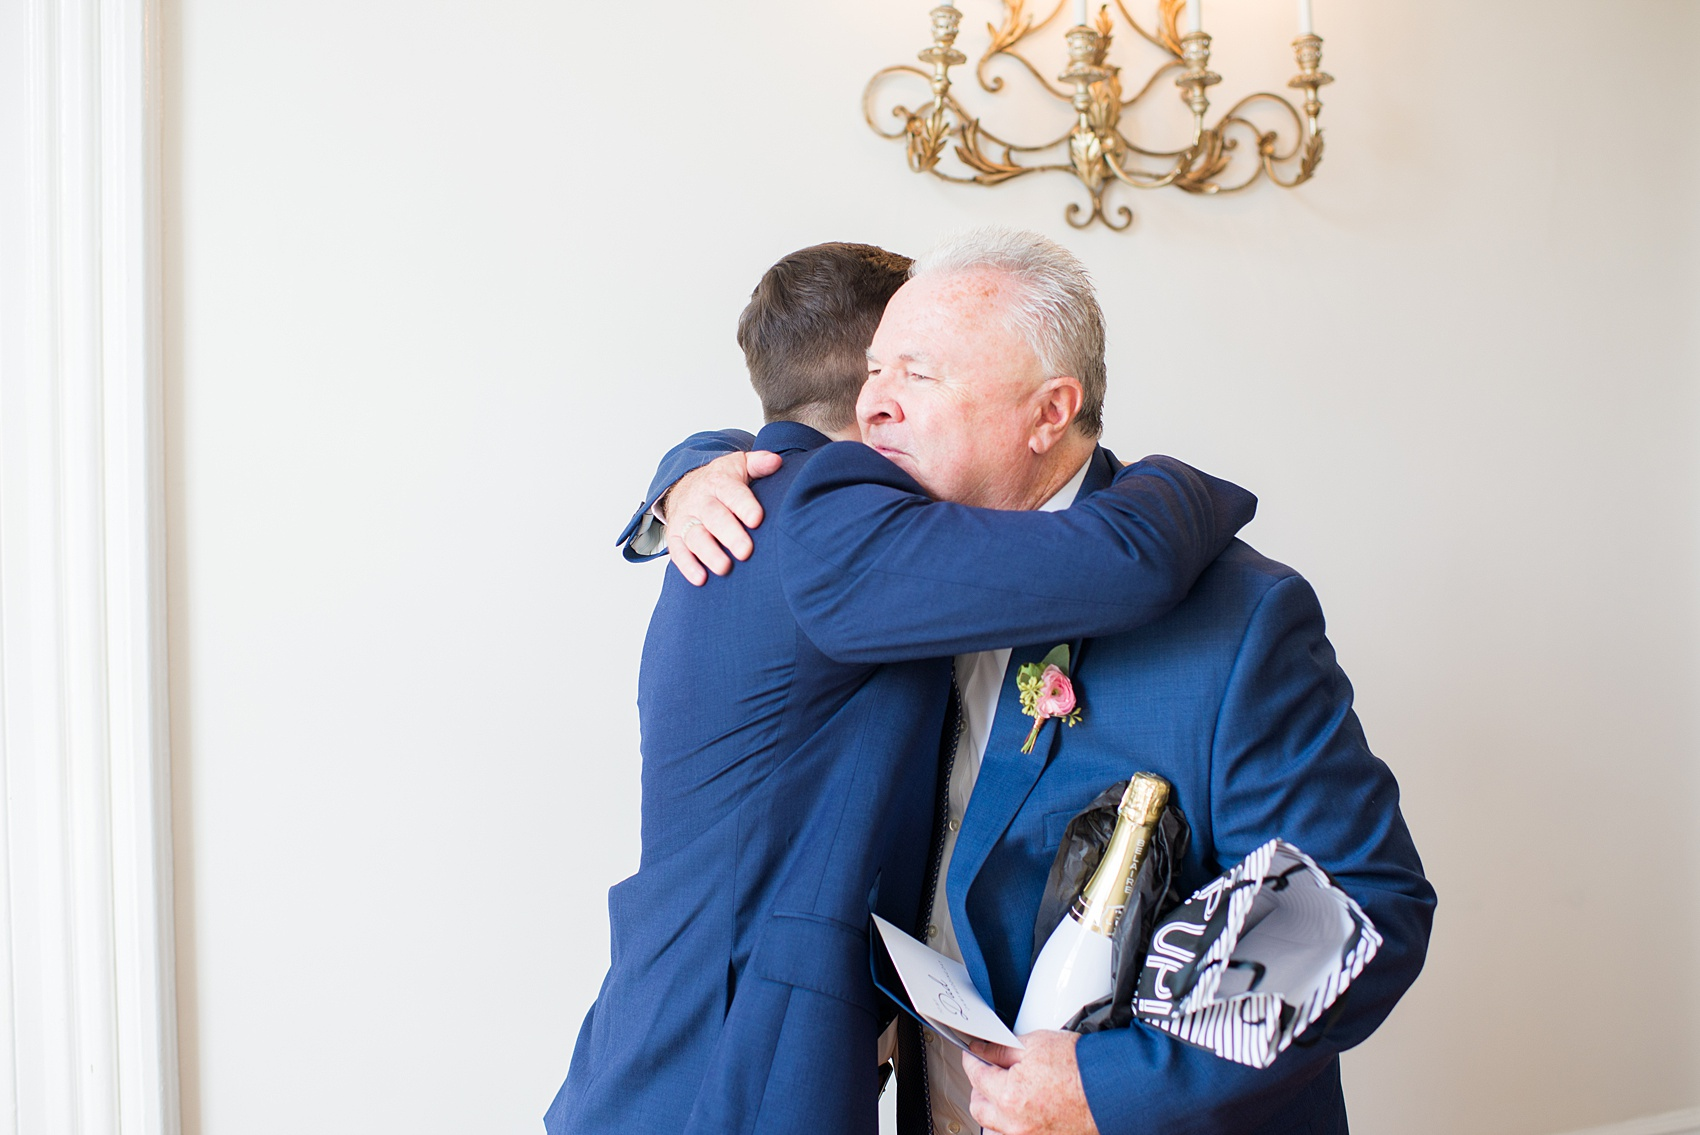 Mikkel Paige Photography pictures from a wedding at Merrimon-Wynne House in Raleigh, NC. Photo of the groom hugging his father.